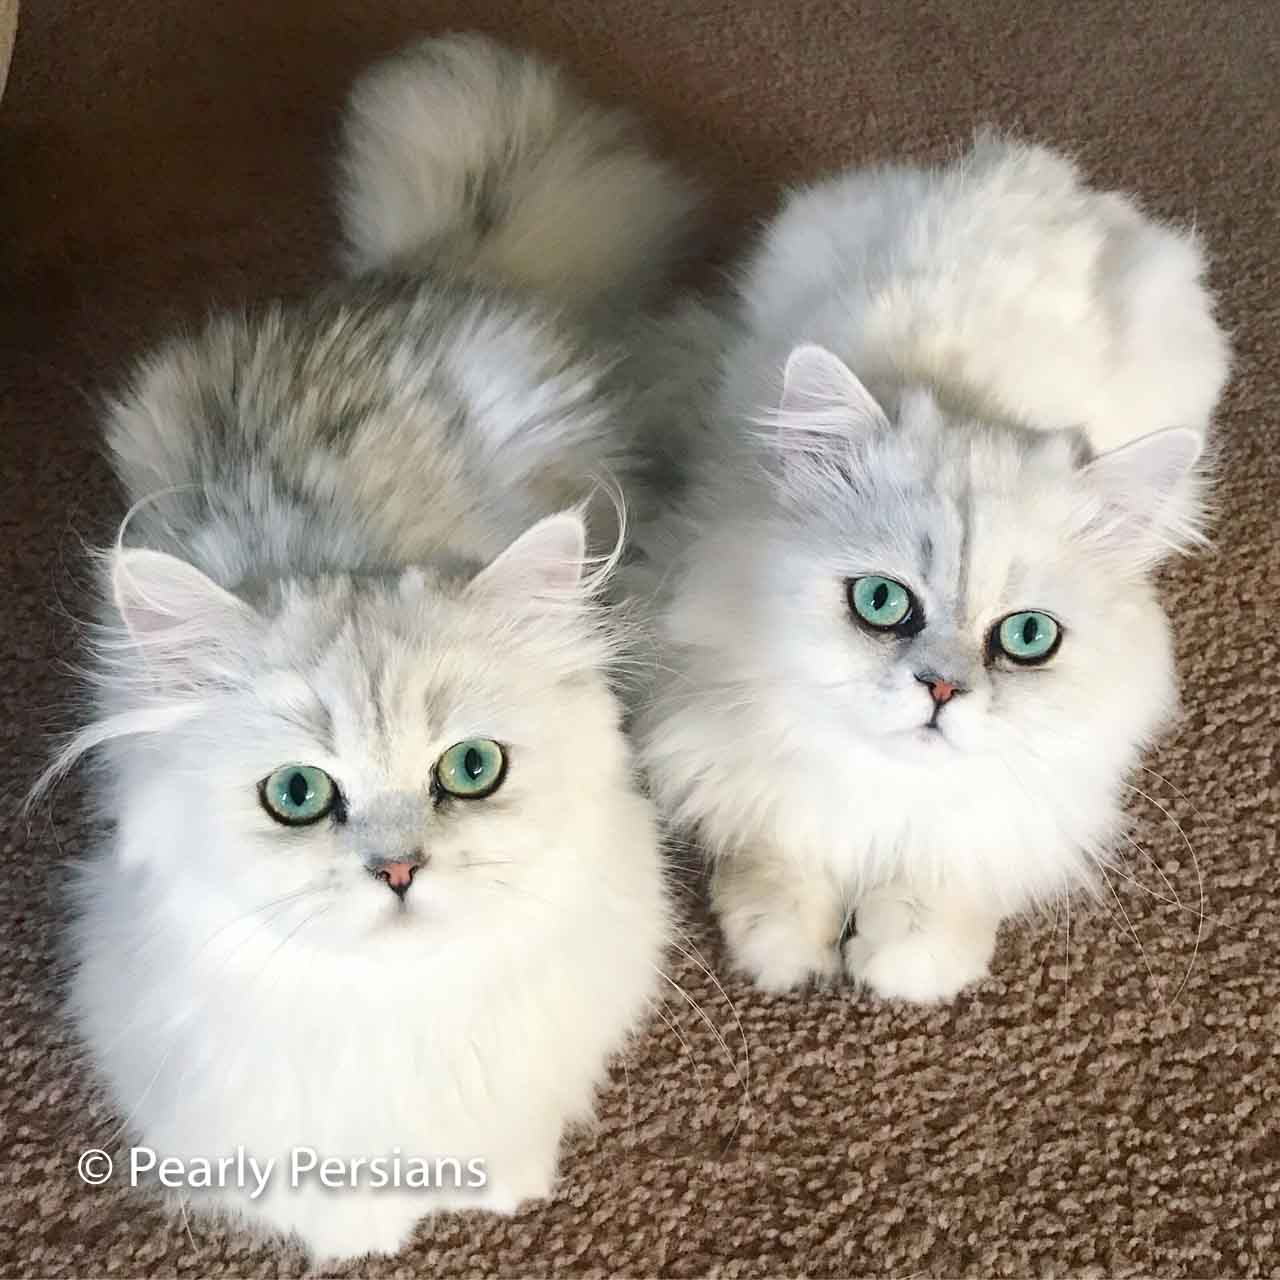 Pearly Persians - Premium Dollface & Silver Chinchilla Cattery